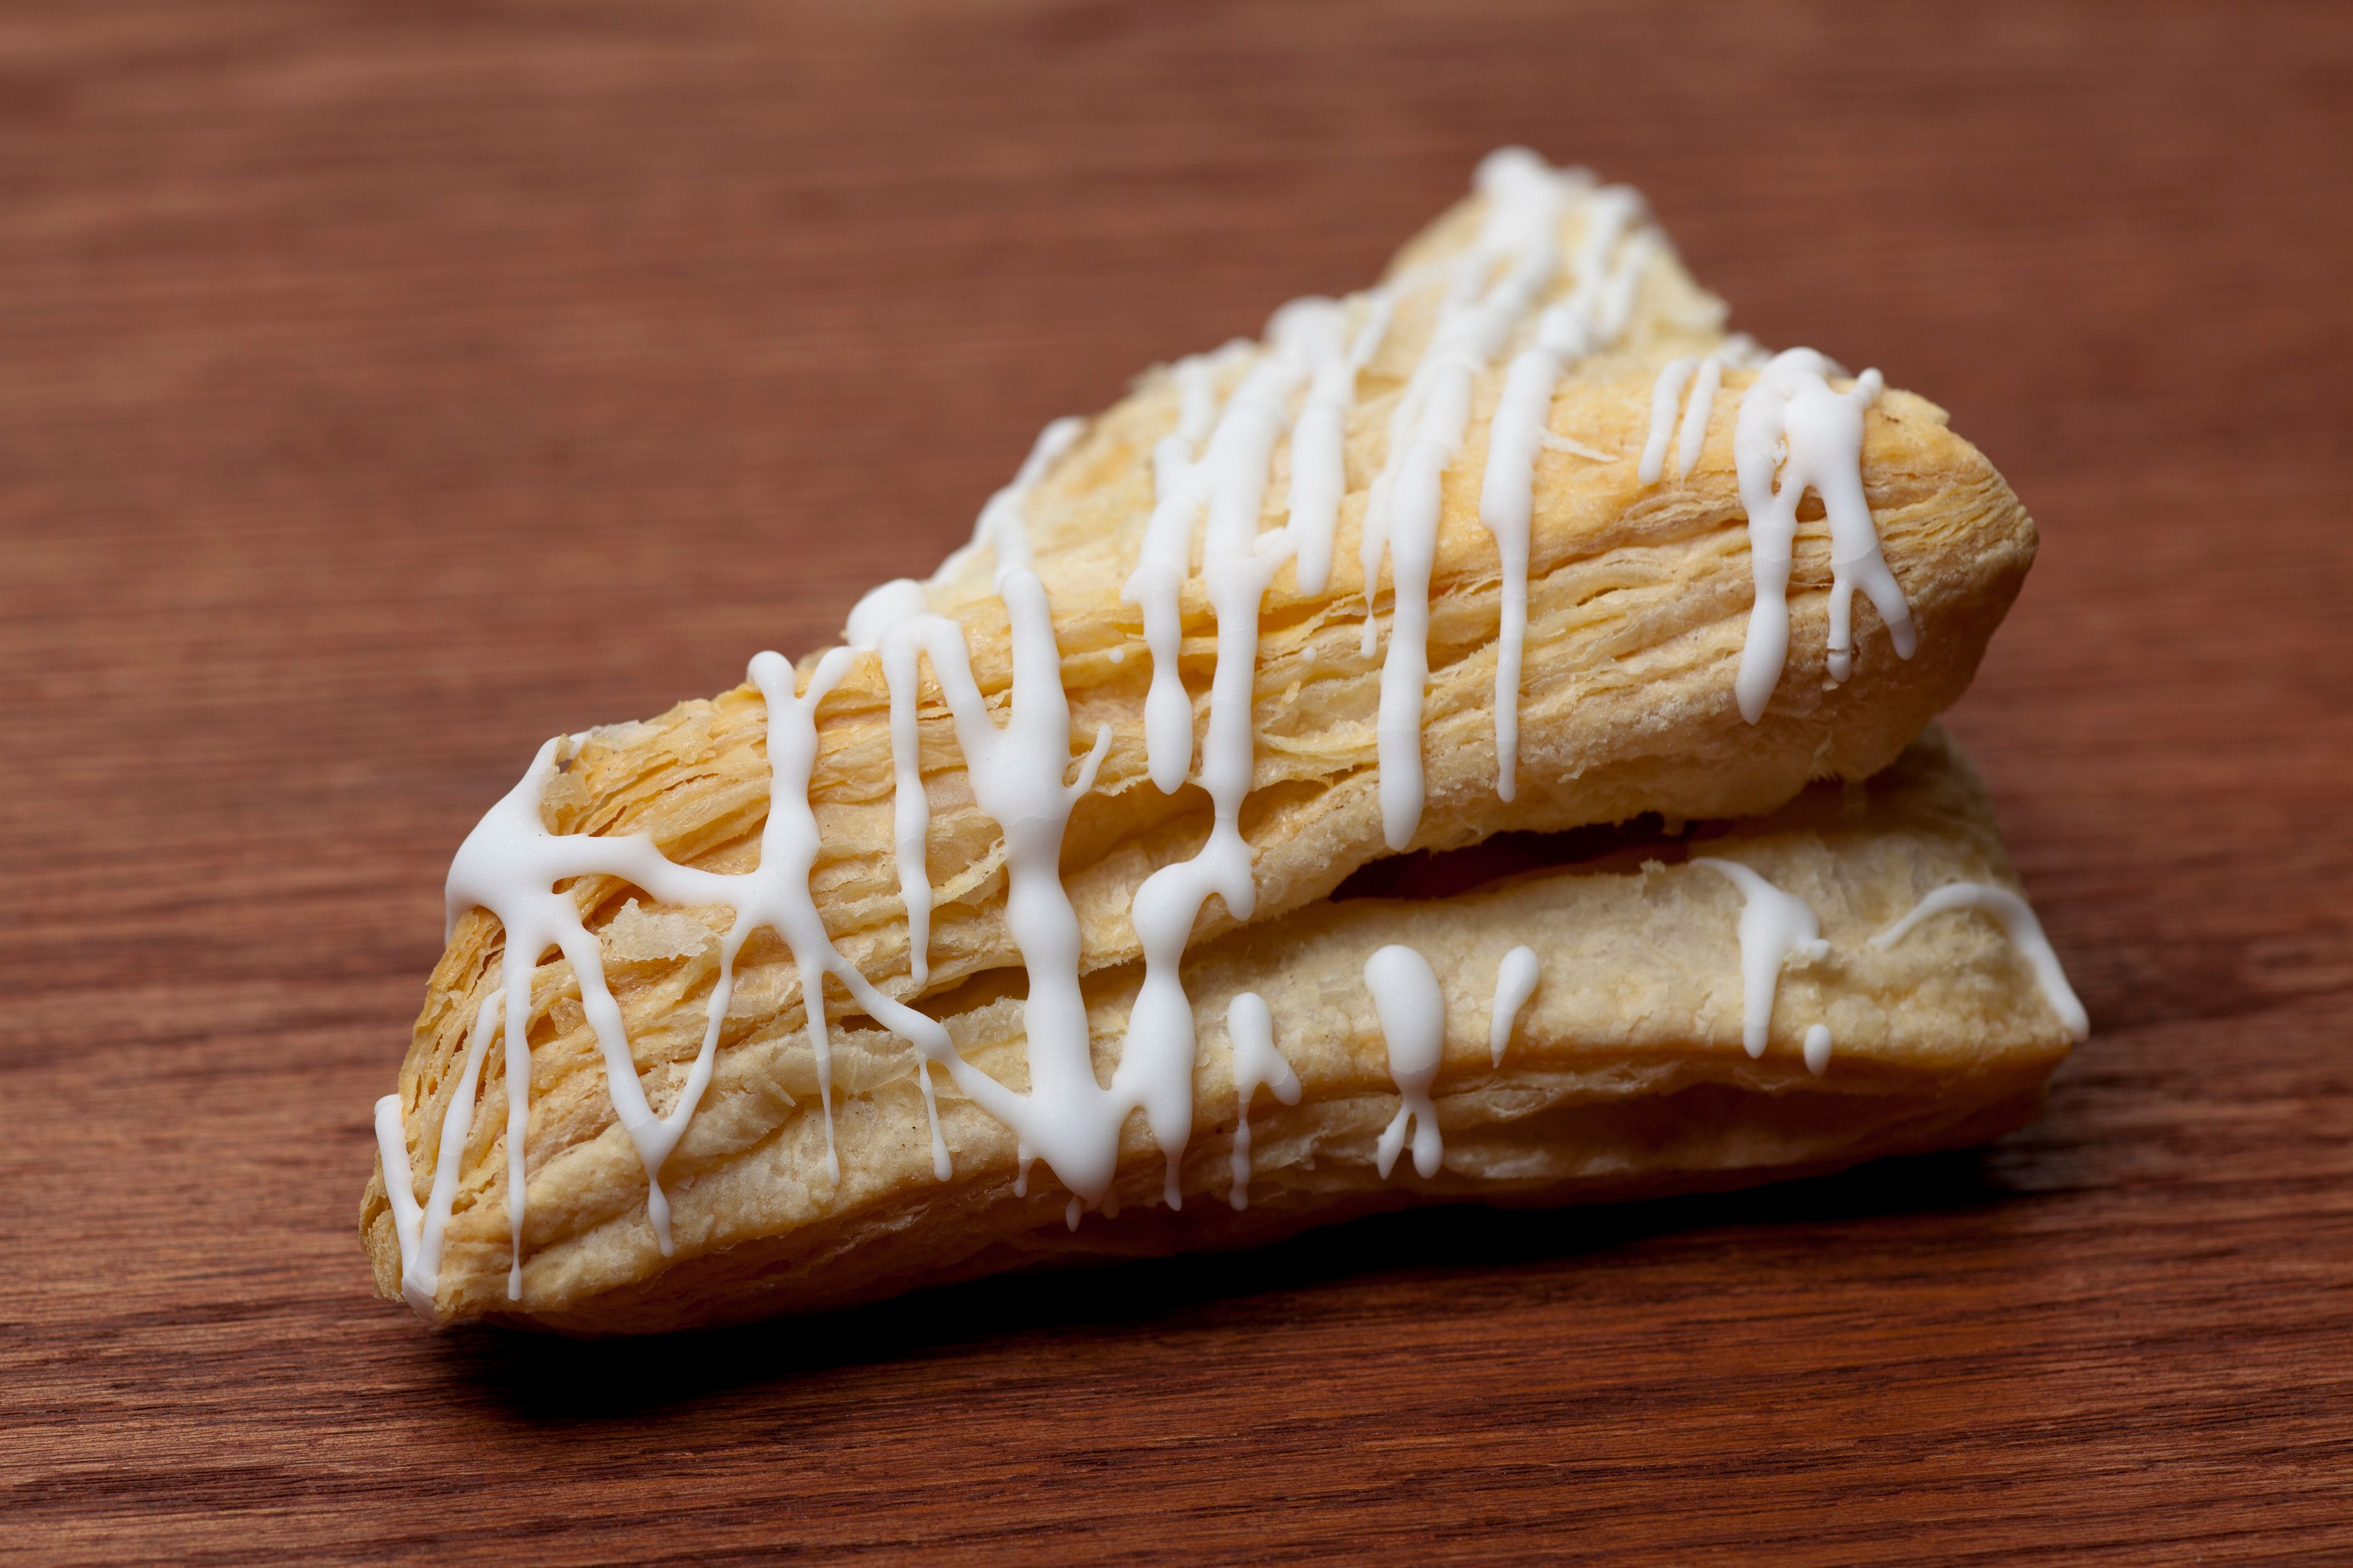 A close up of a fruit turnover on a wood surface. Turnovers are made like croissants with a laminated dough and can have a number of different fruit fillings like apple, blueberry, and peach. They're also topped with icing.